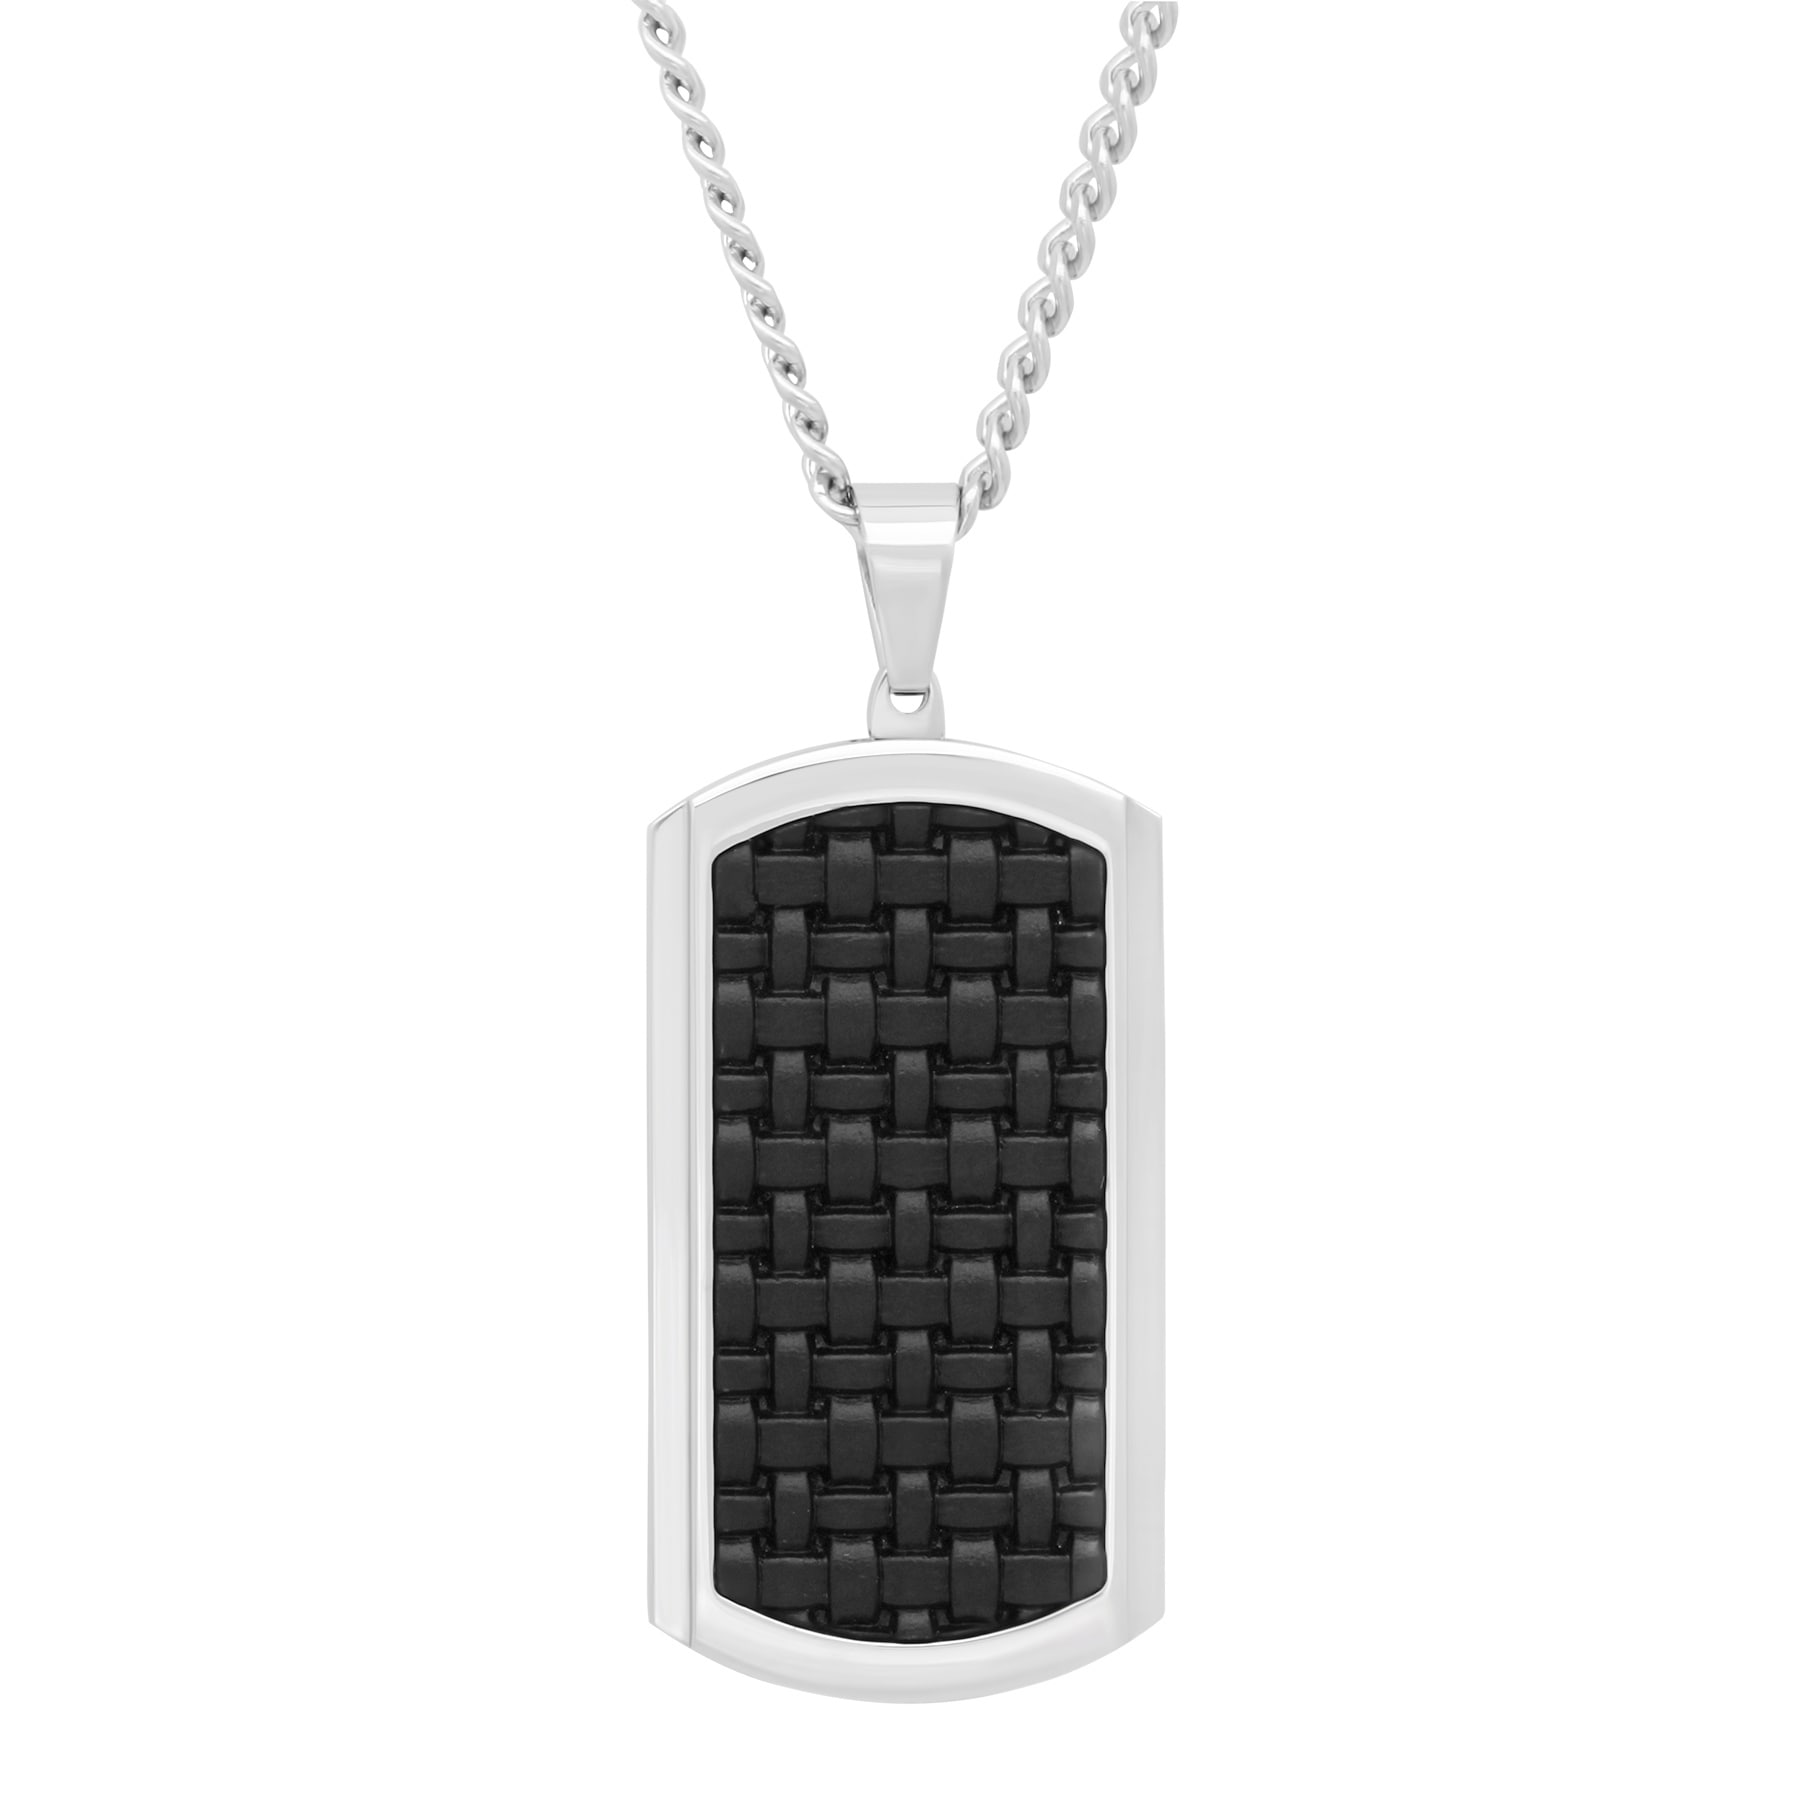 armani emporio tag dog webstore product necklace steel d stainless jones men ernest pendant s number